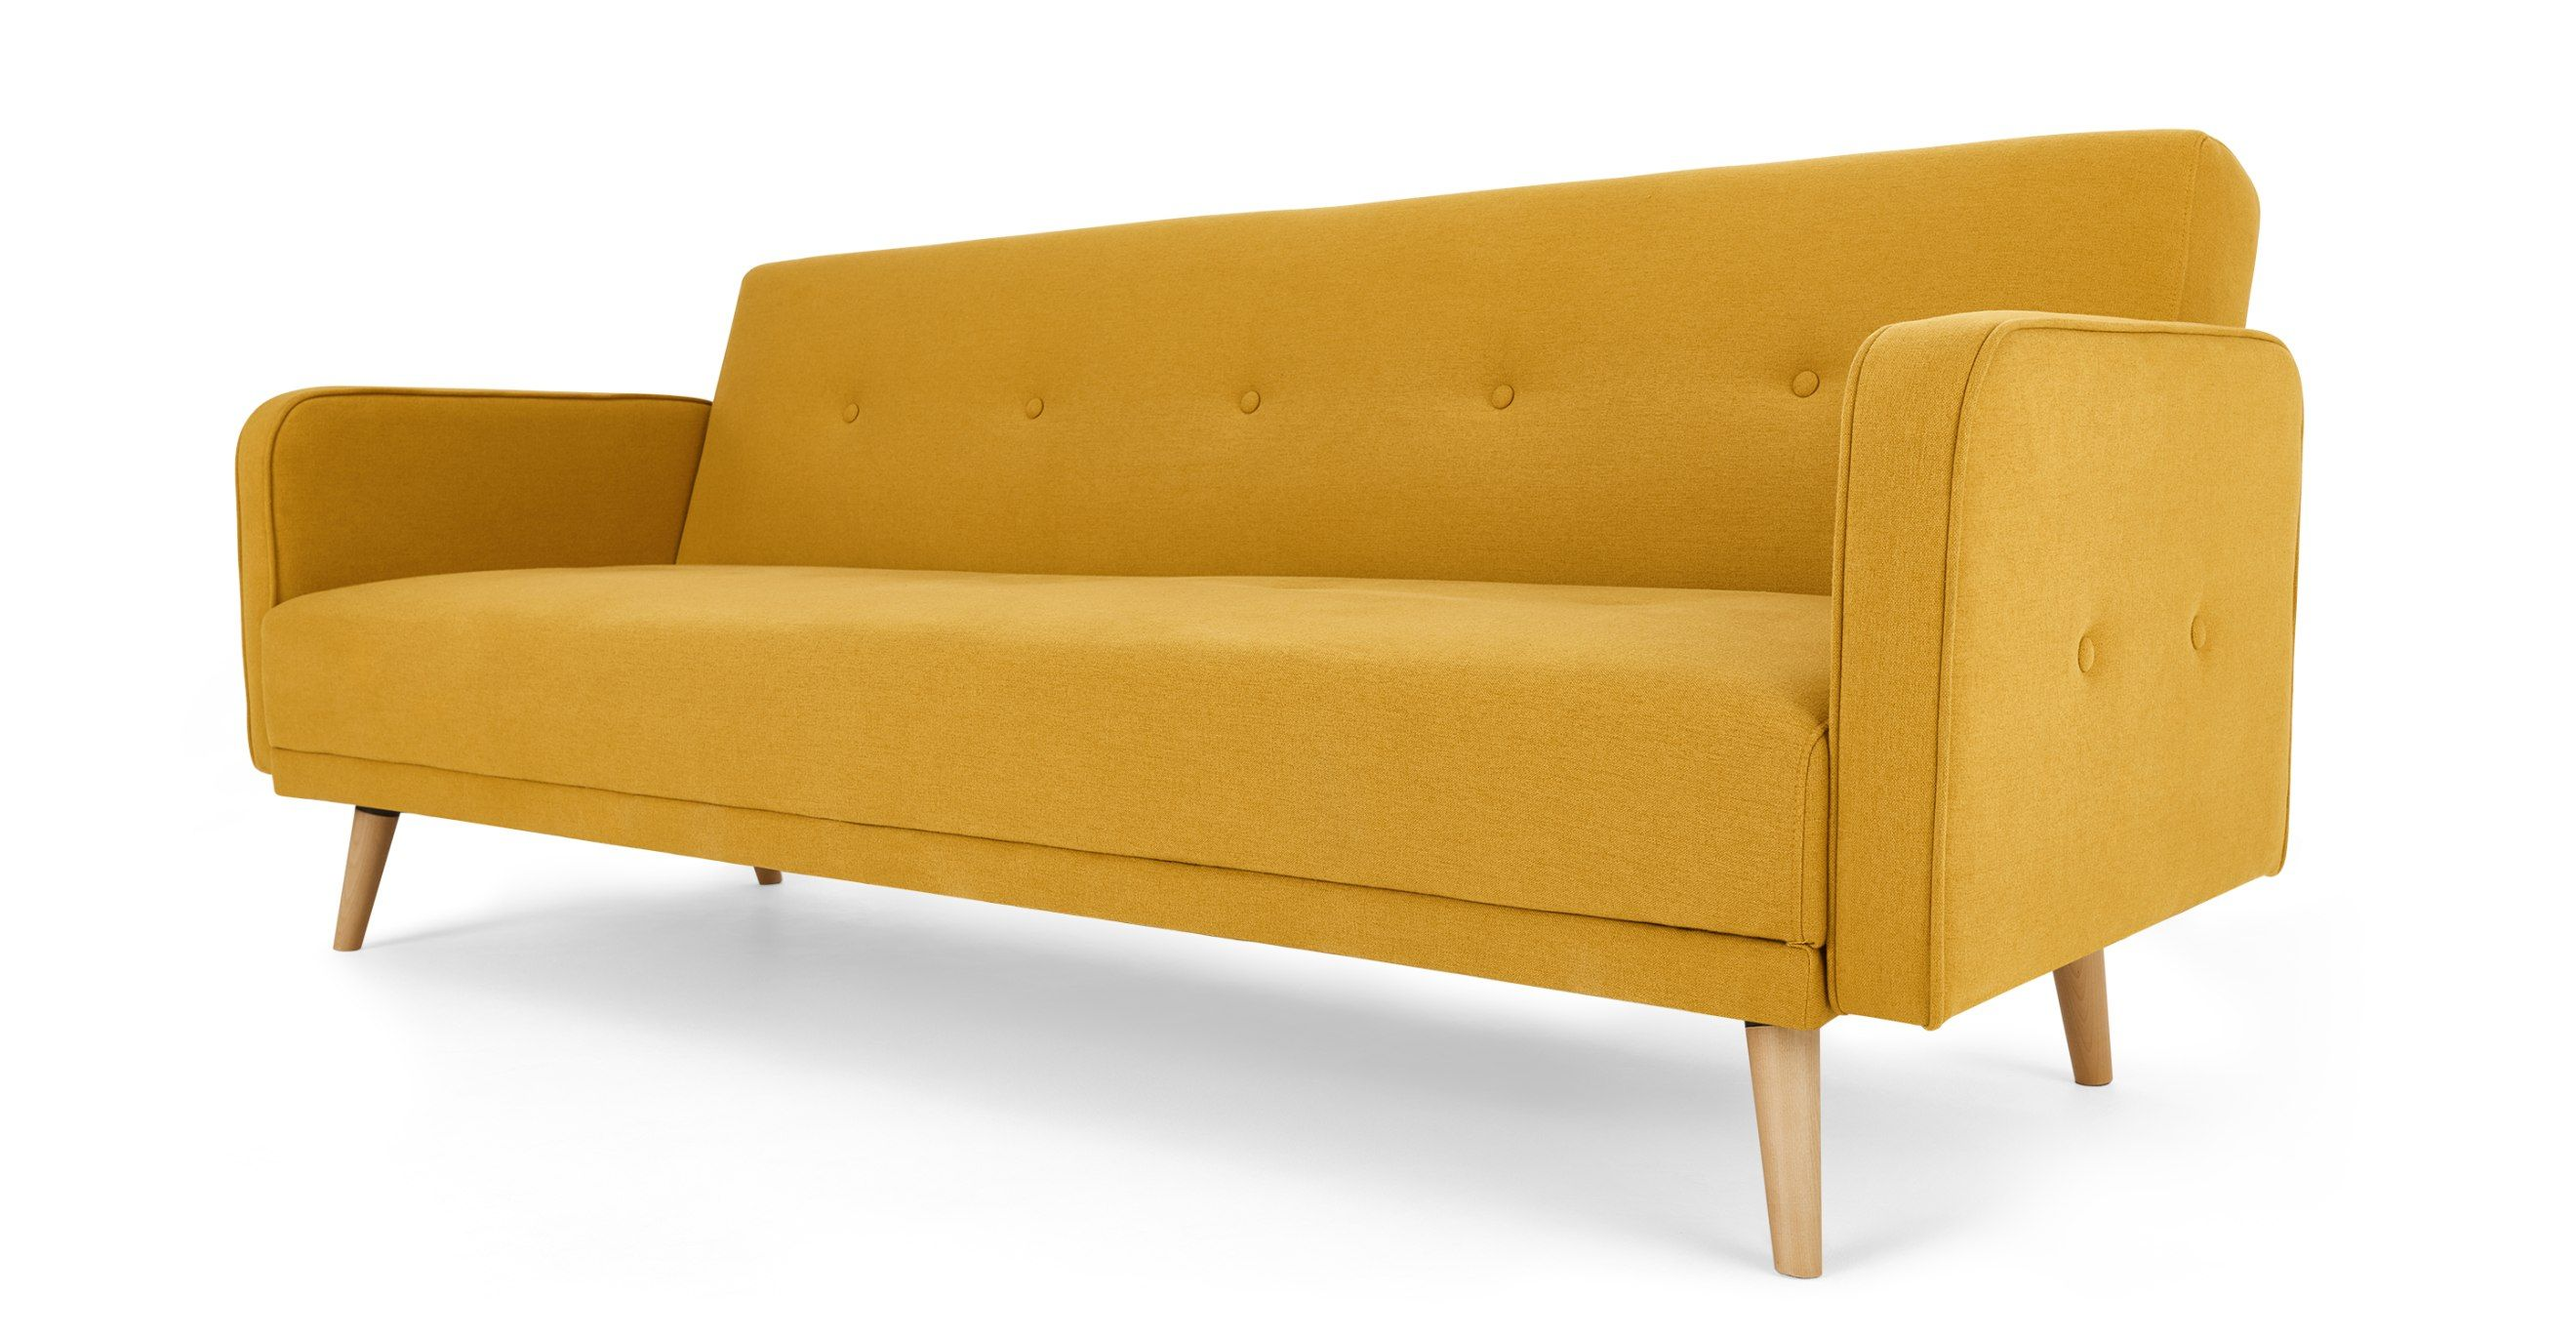 Chou Click Clack Sofa Bed, Butter Yellow in 2020 (met